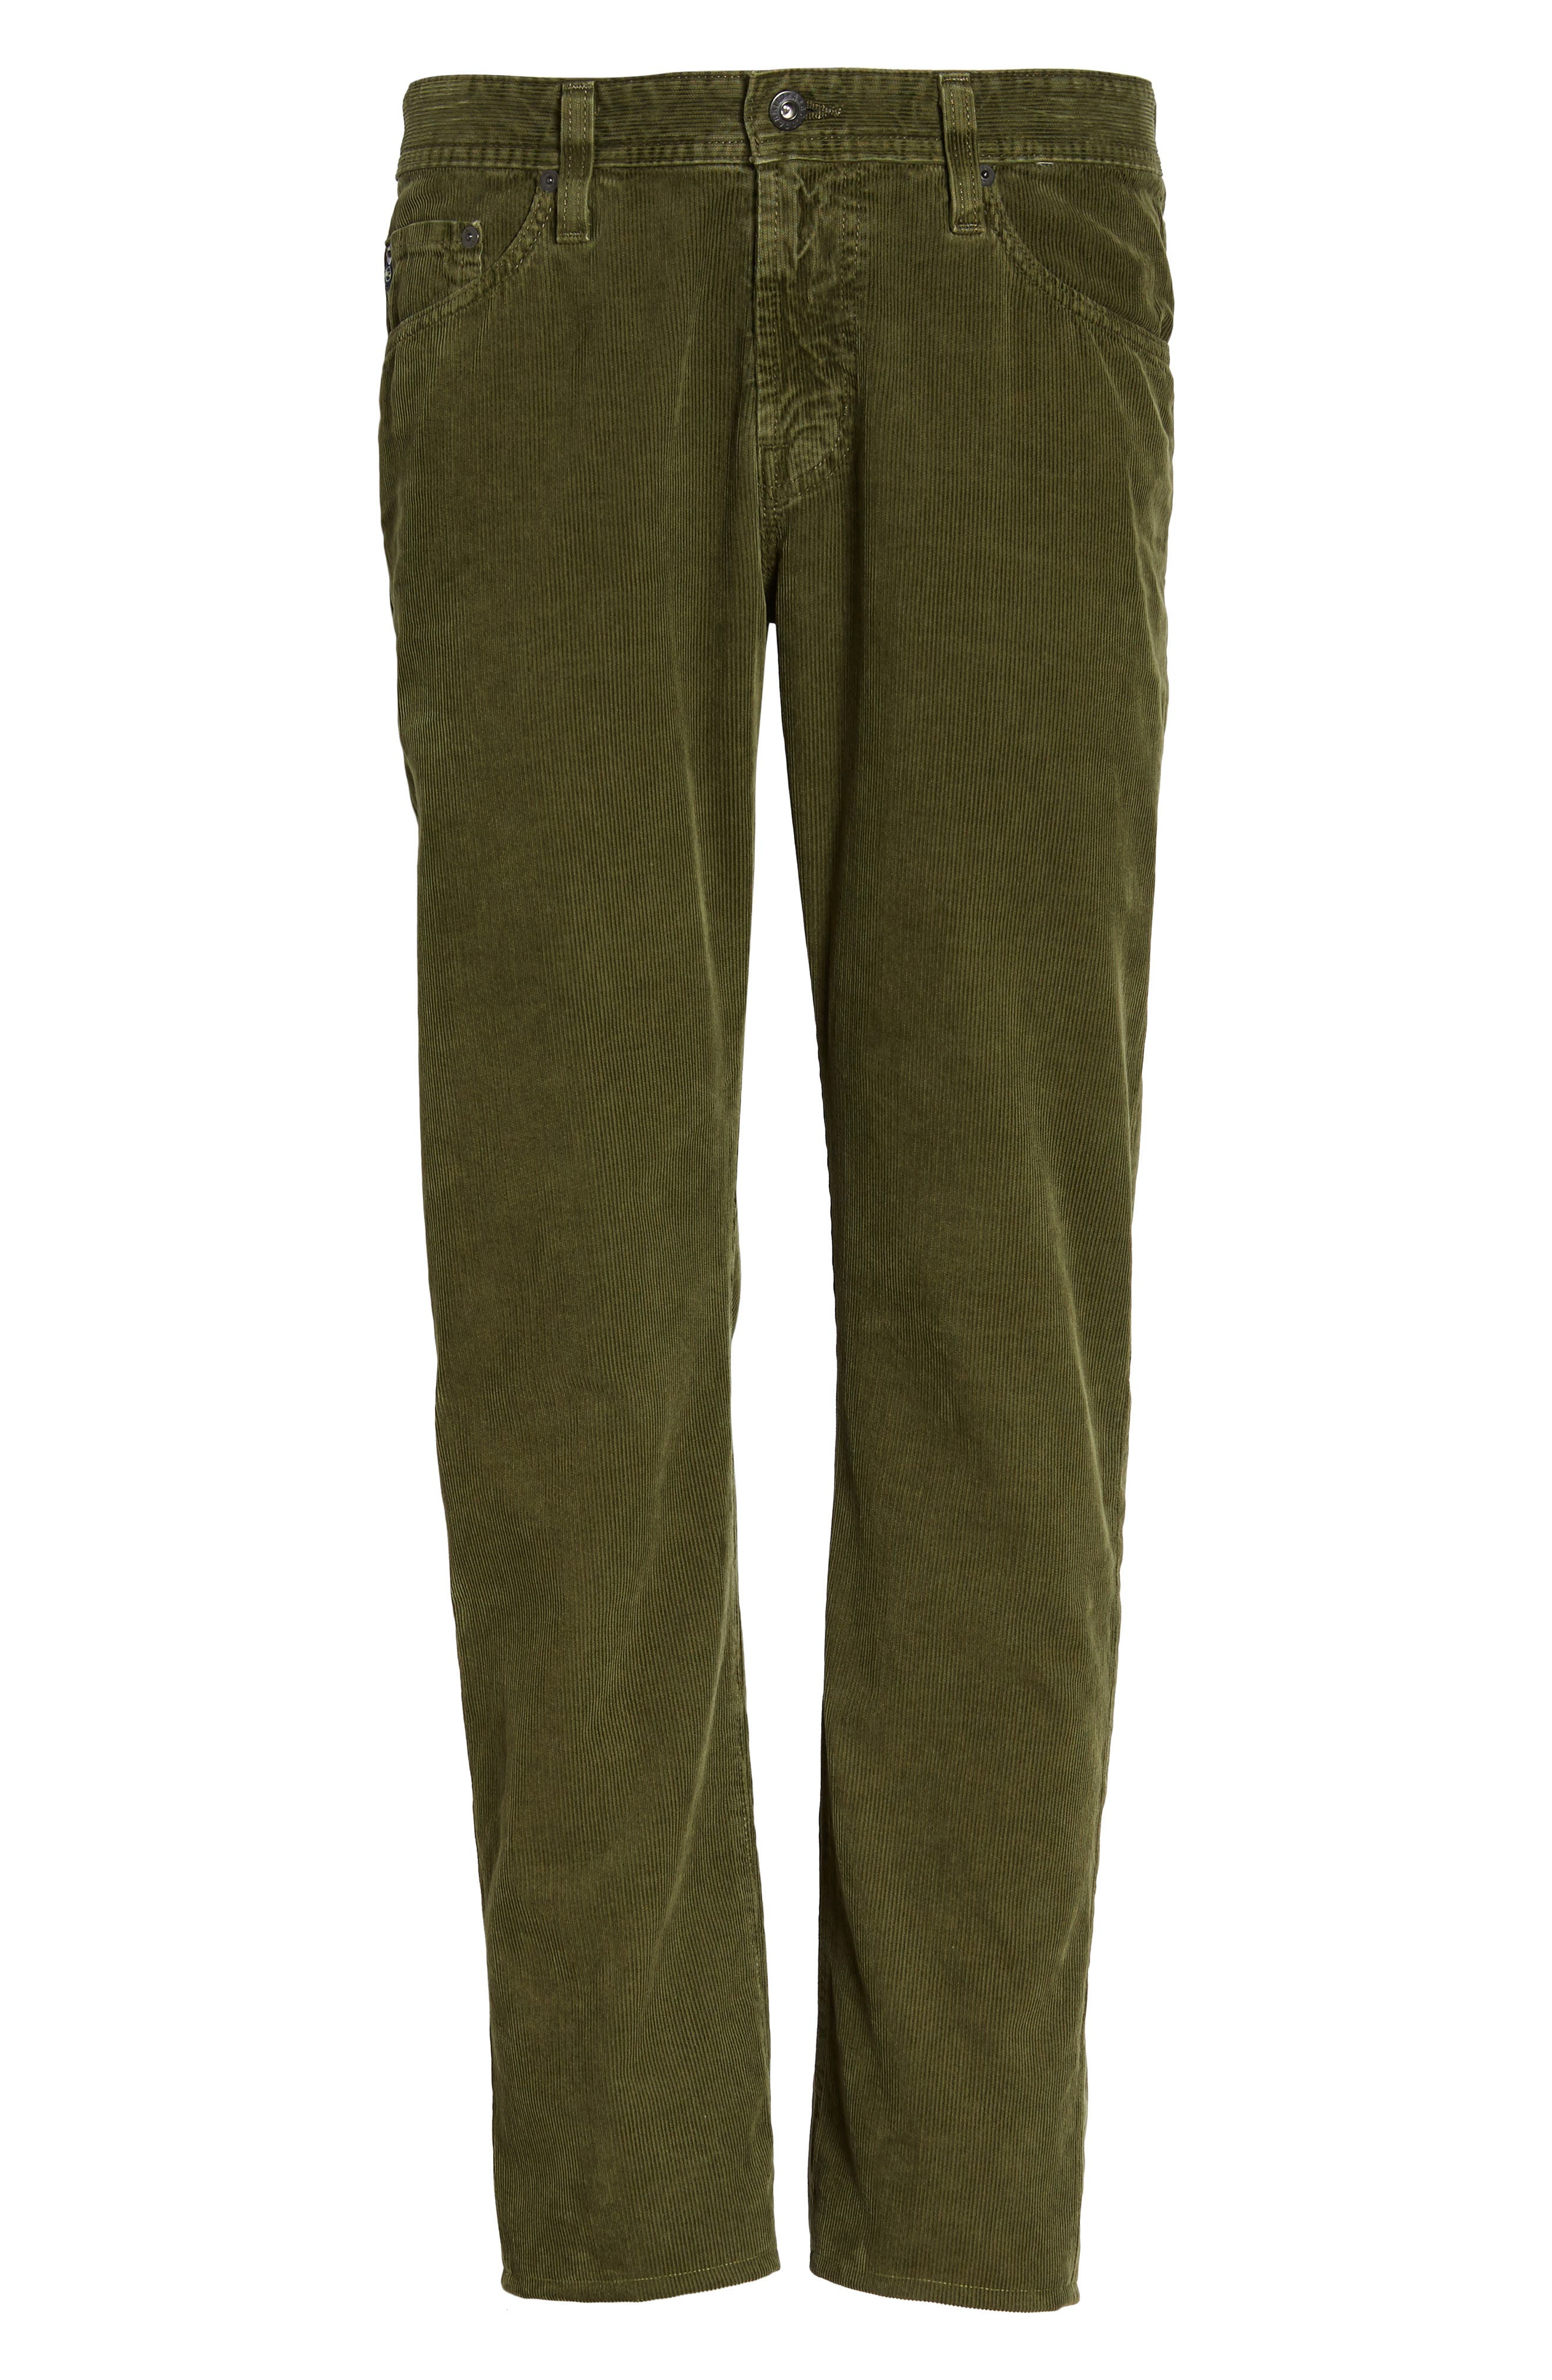 'Graduate' Tailored Straight Leg Corduroy Pants,                             Alternate thumbnail 72, color,